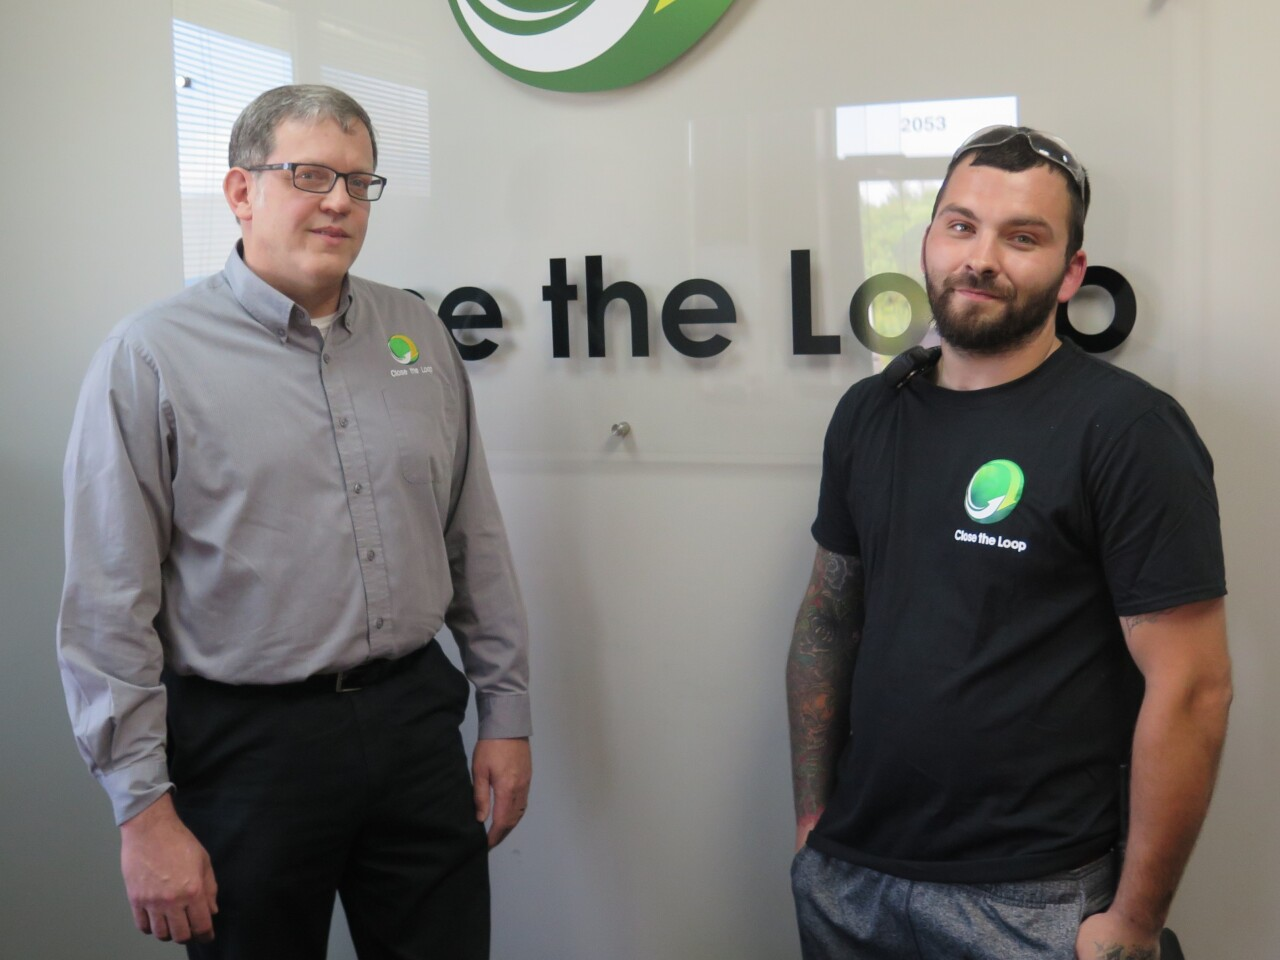 Close the Loop co-CEO Tom Ogonek, at left, poses for a photo with Adam Criss. They are standing in front of a company logo that says Close the Loop.